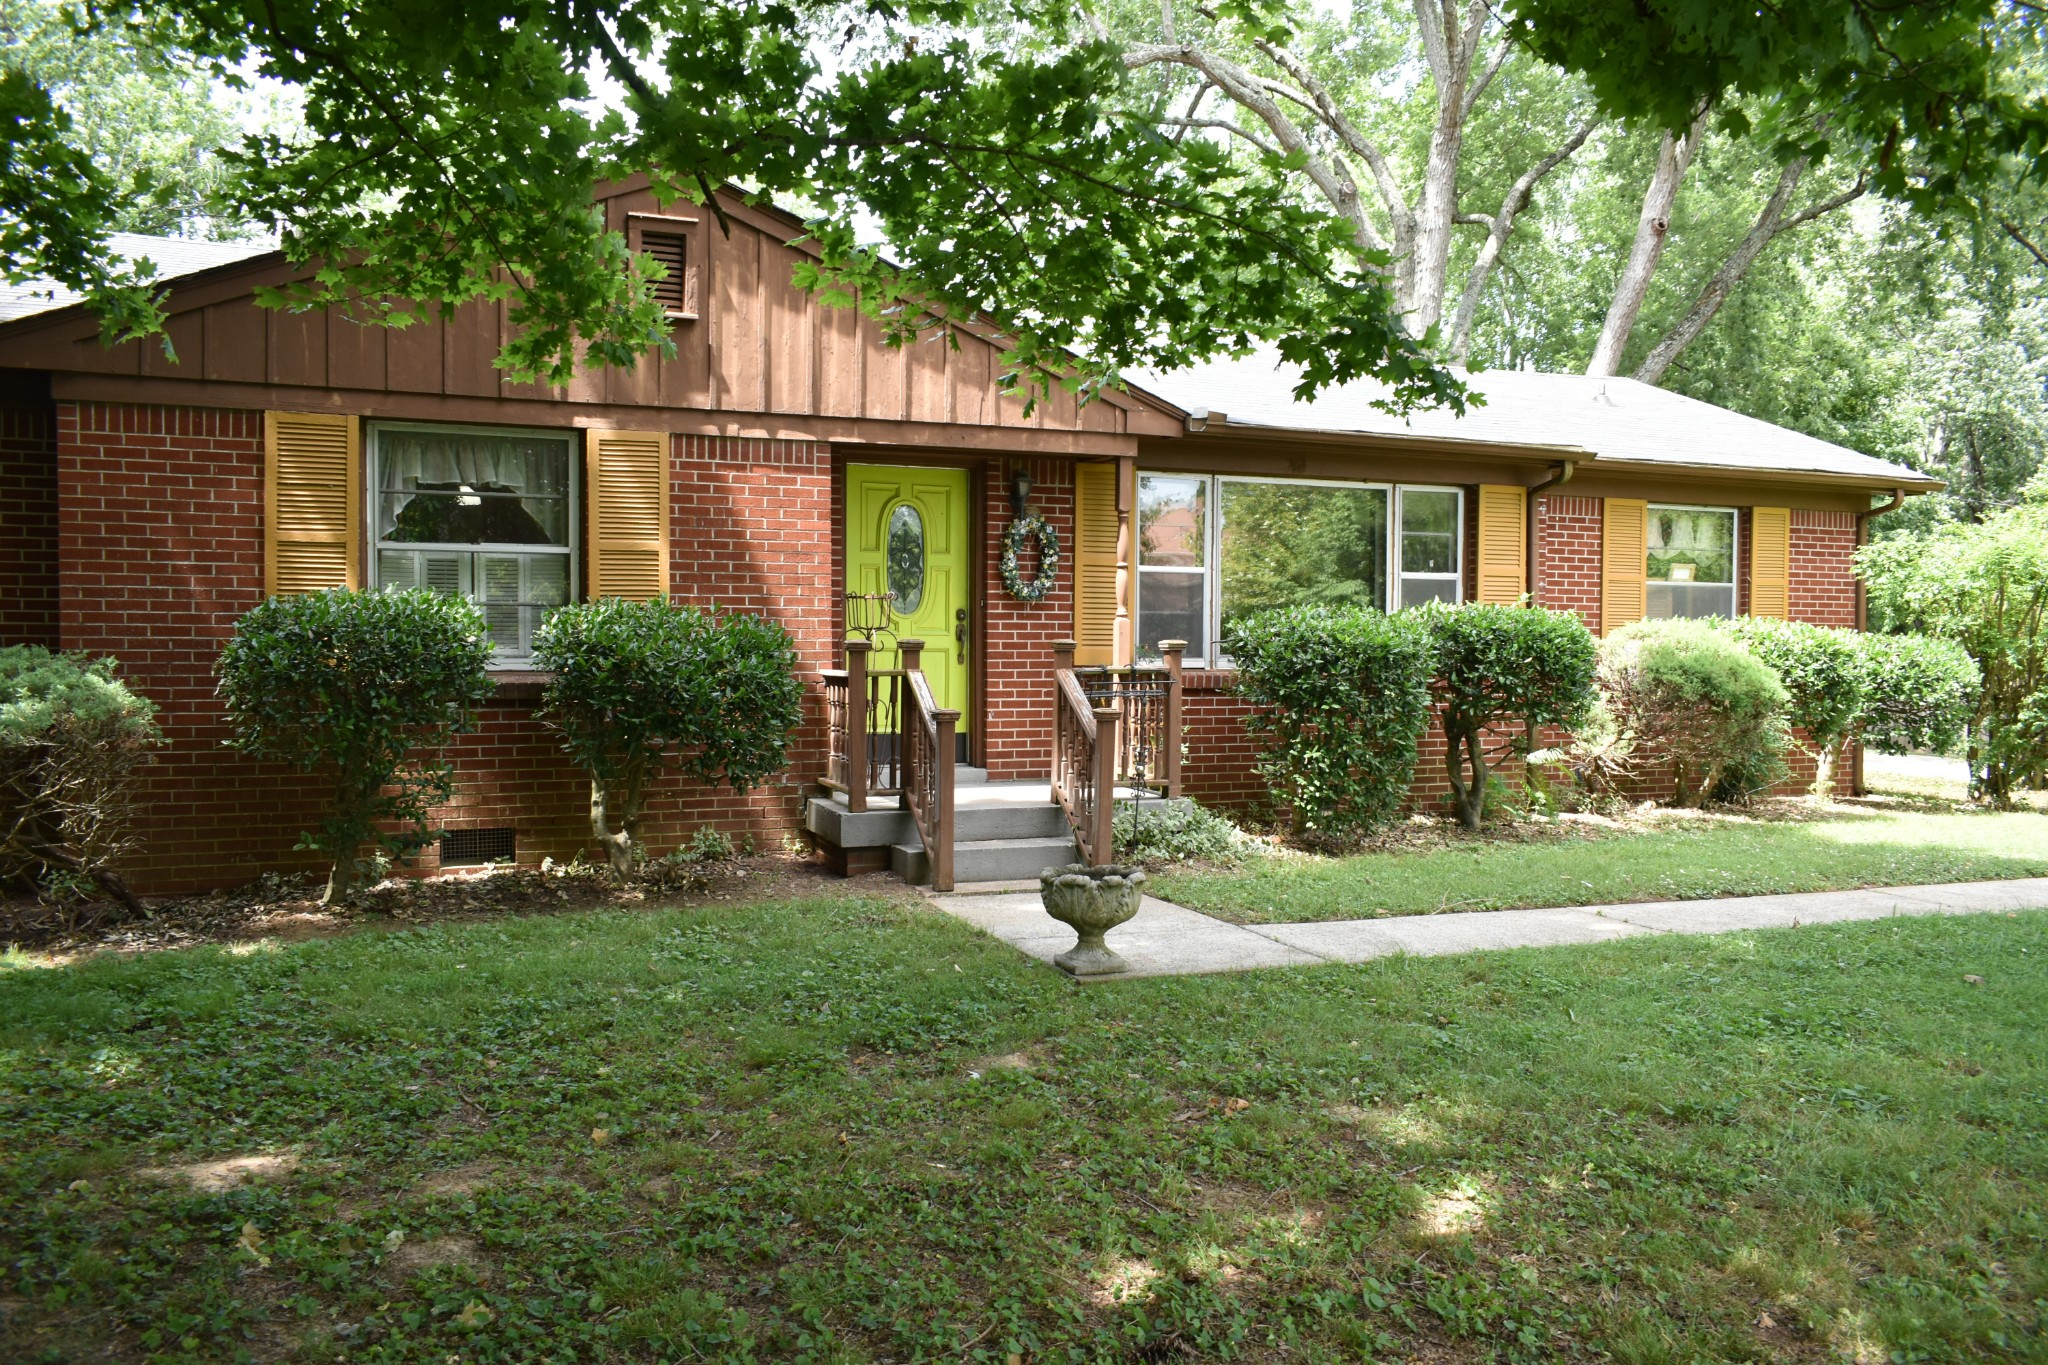 Charming All Brick Ranch With Over 1/2 An Acre Gorgeous Lot!  1020 Nancy Ave., Gallatin, TN.  37066